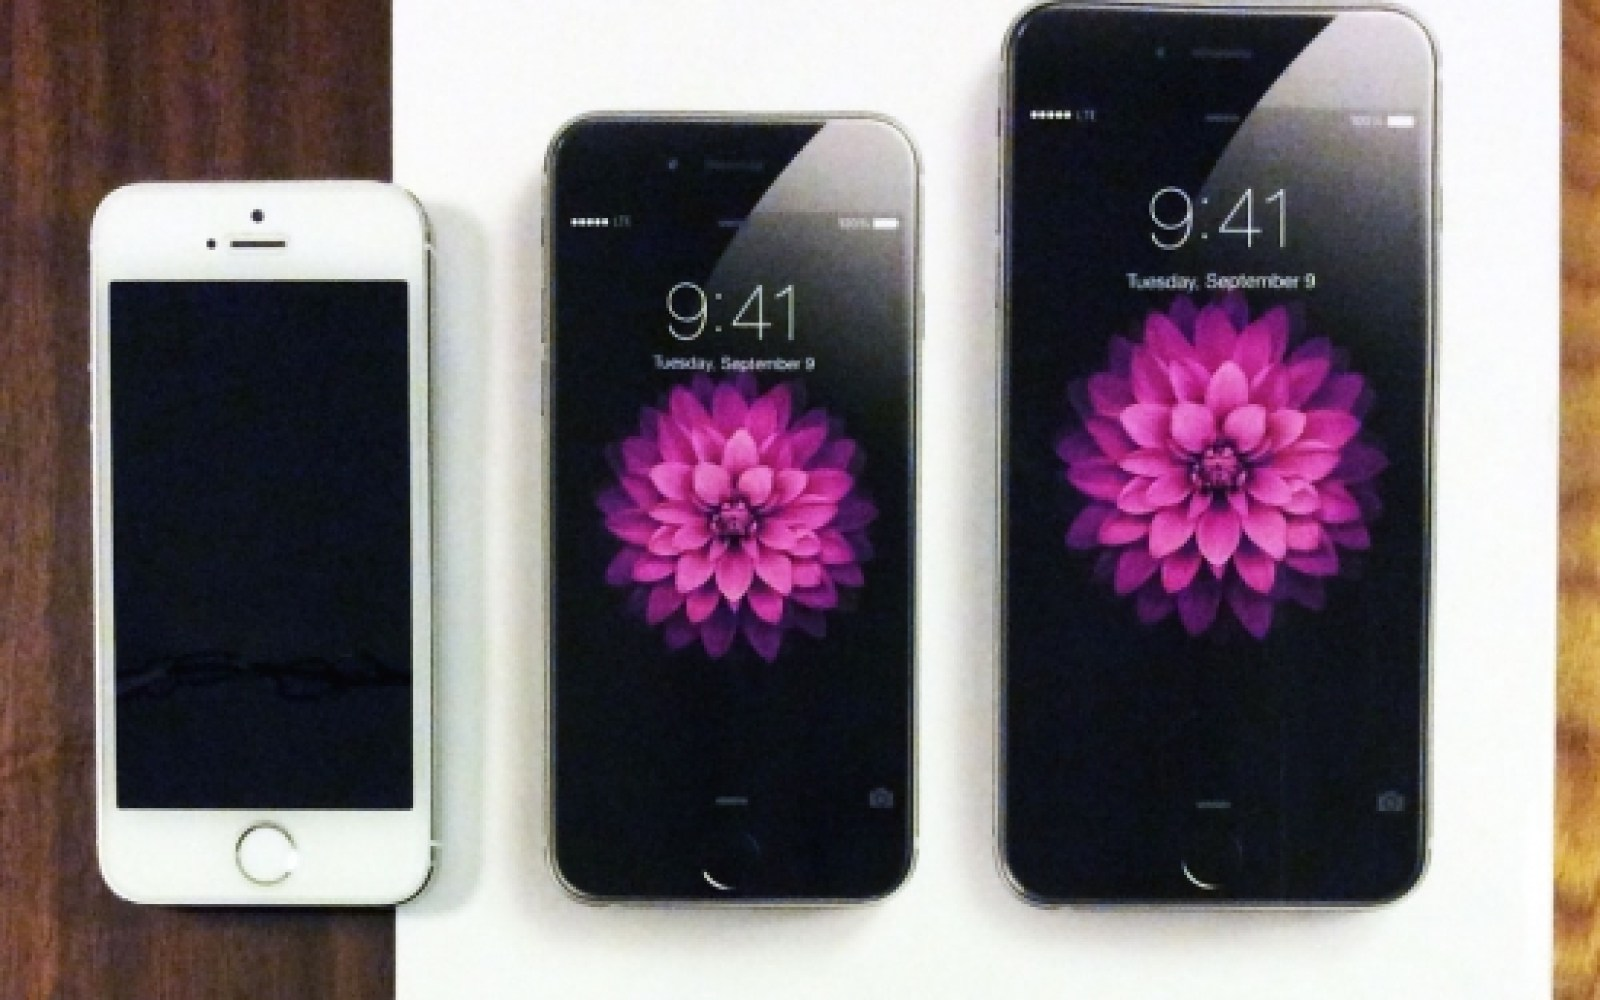 Apple debuts new iPhone 6 print ads featuring actual-size images of the phones